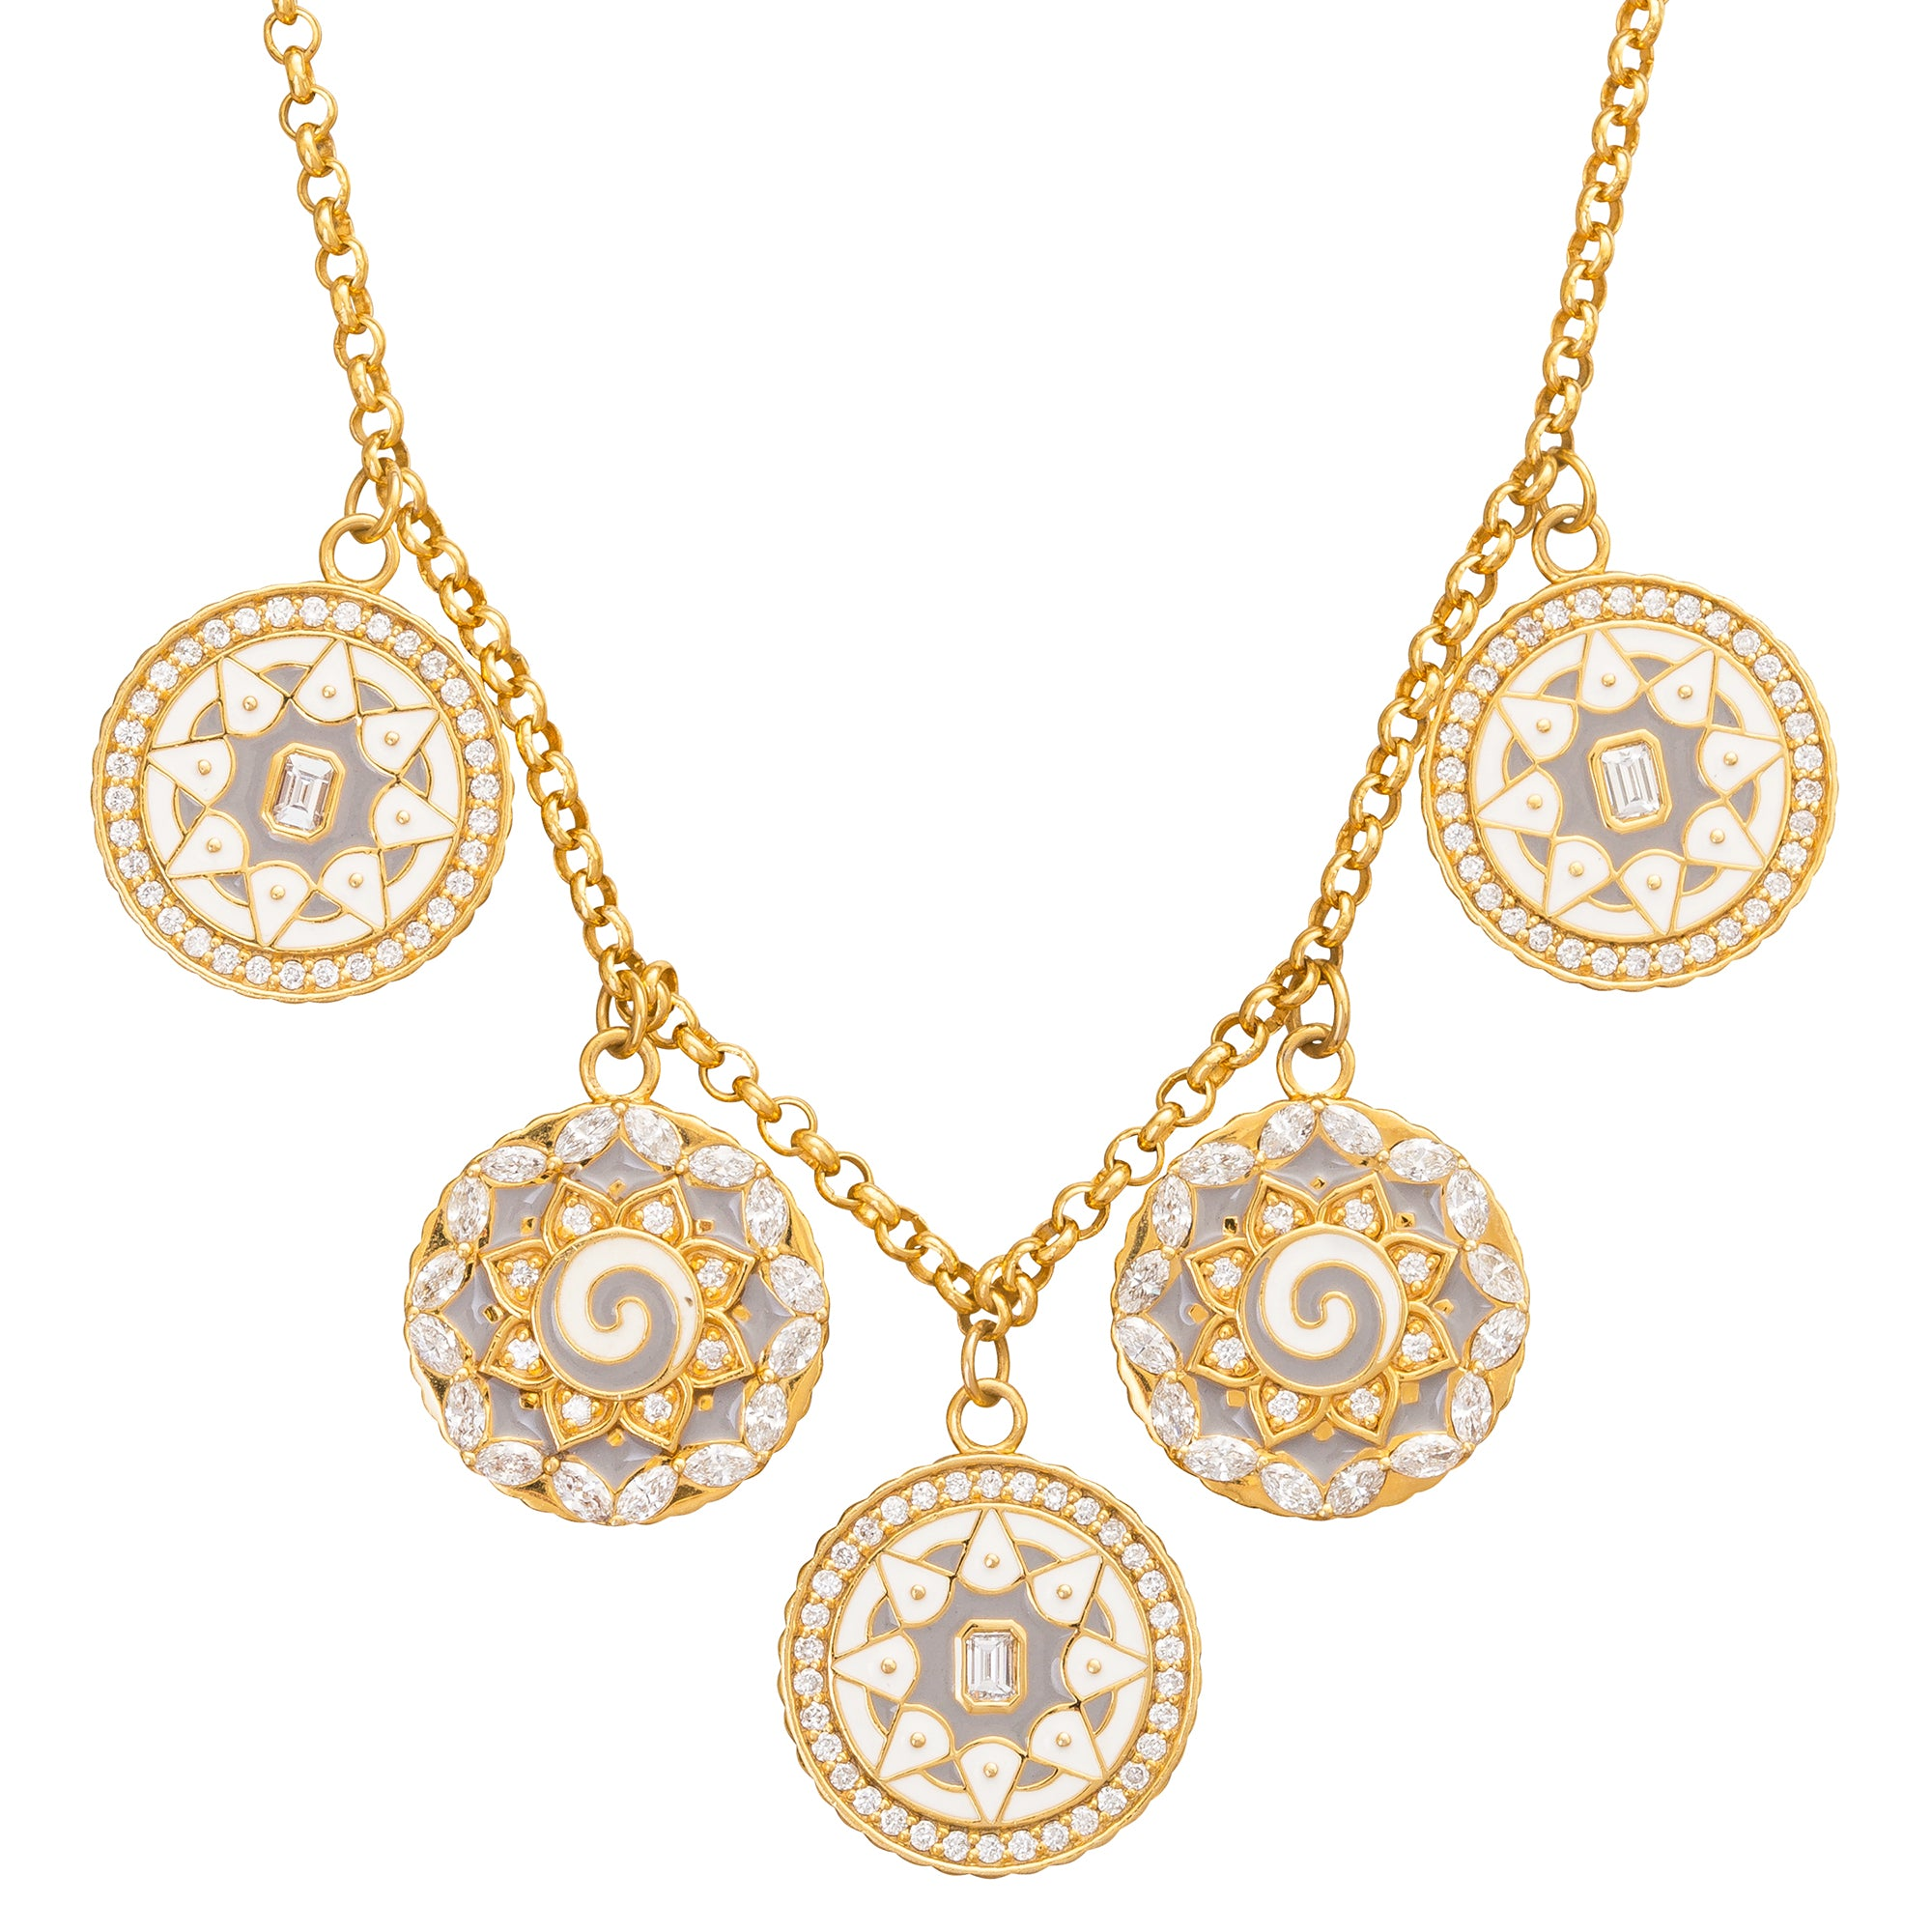 Gold Enamel White Diamond 5 Mandala Coin Necklace by Buddha Mama for Broken English Jewelry